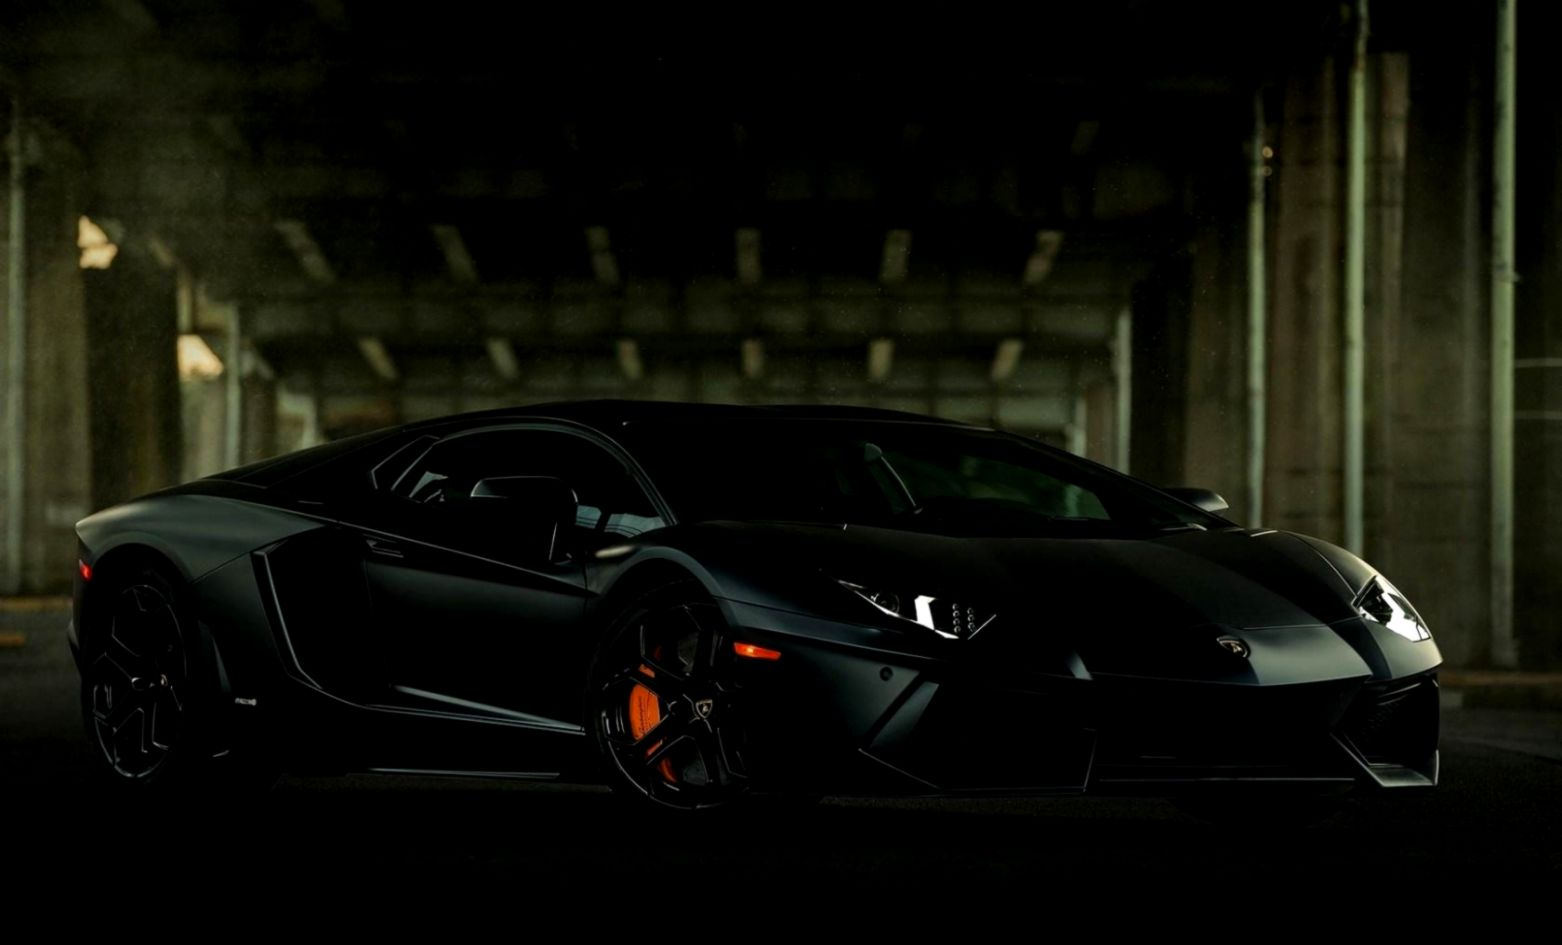 Lamborghini Aventador Lp700 4 Black Hd Wallpaper Format Wallpapers